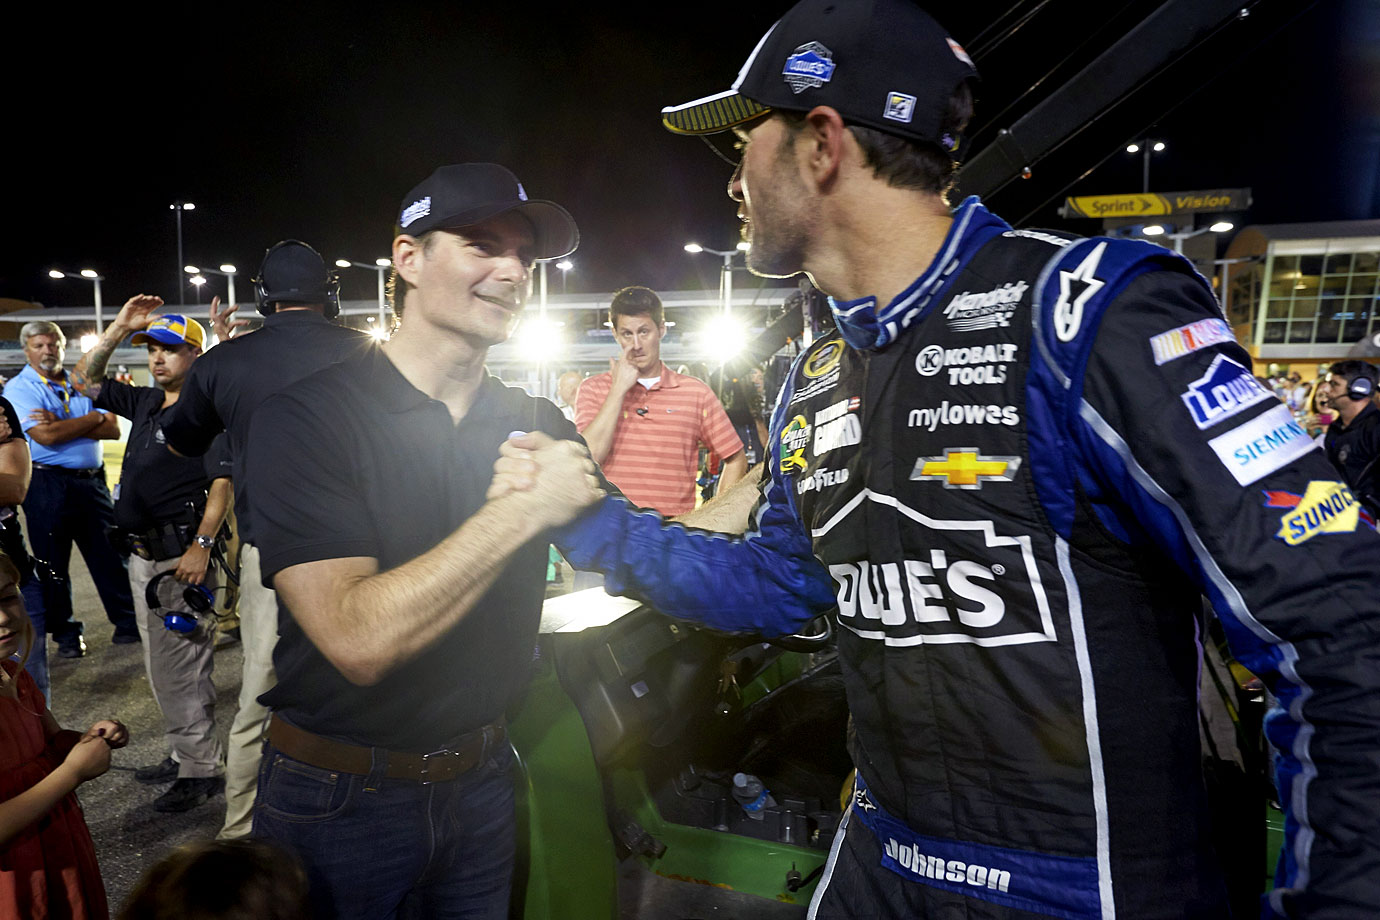 Jeff Gordon congratulates Jimmie Johnson on winning the Sprint Cup Series Championship at Homestead-Miami Speedway.